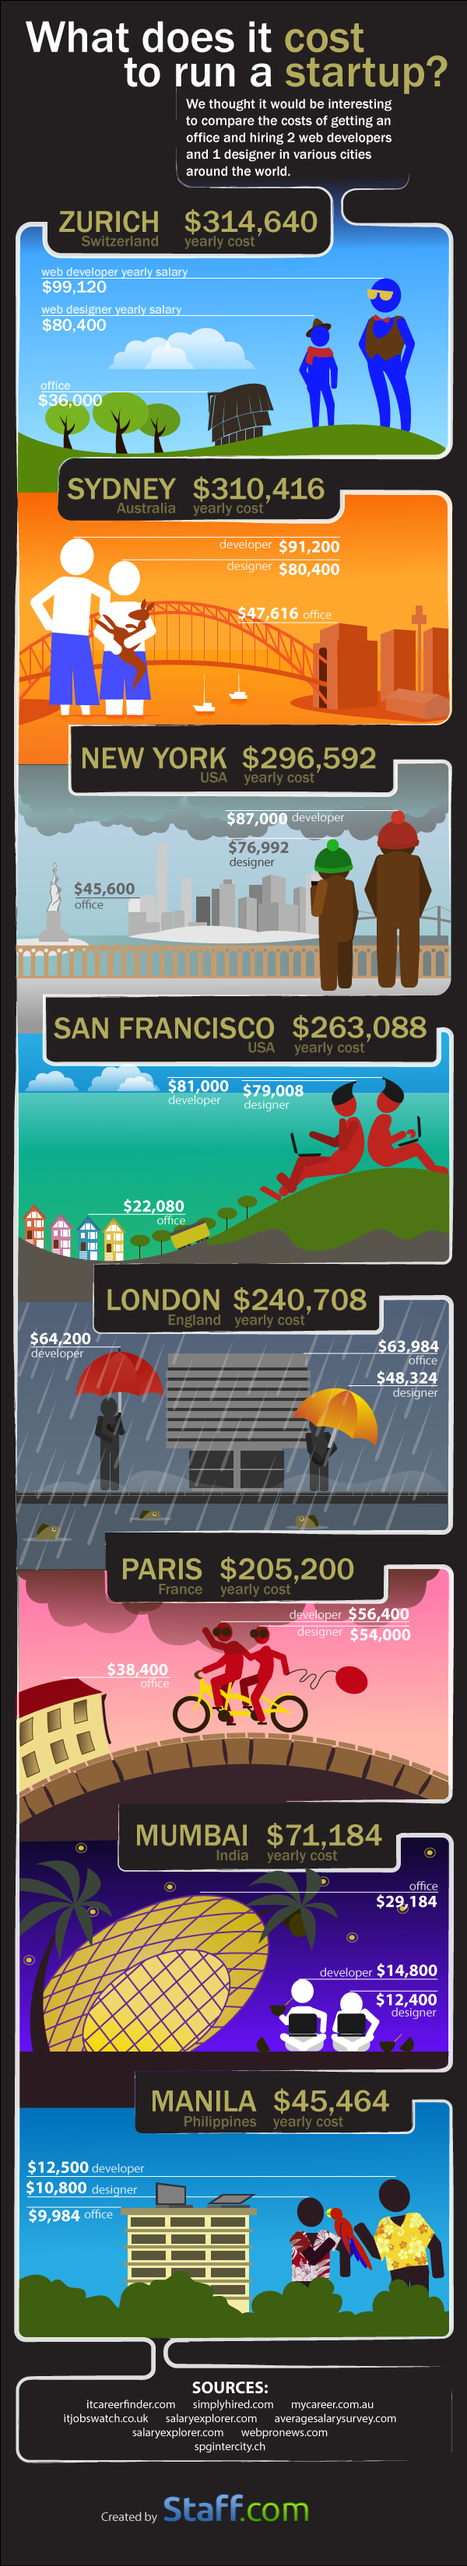 [Infographic] The cost of running a startup. Comparing the cities around the world. | Ondernemerschap | Scoop.it